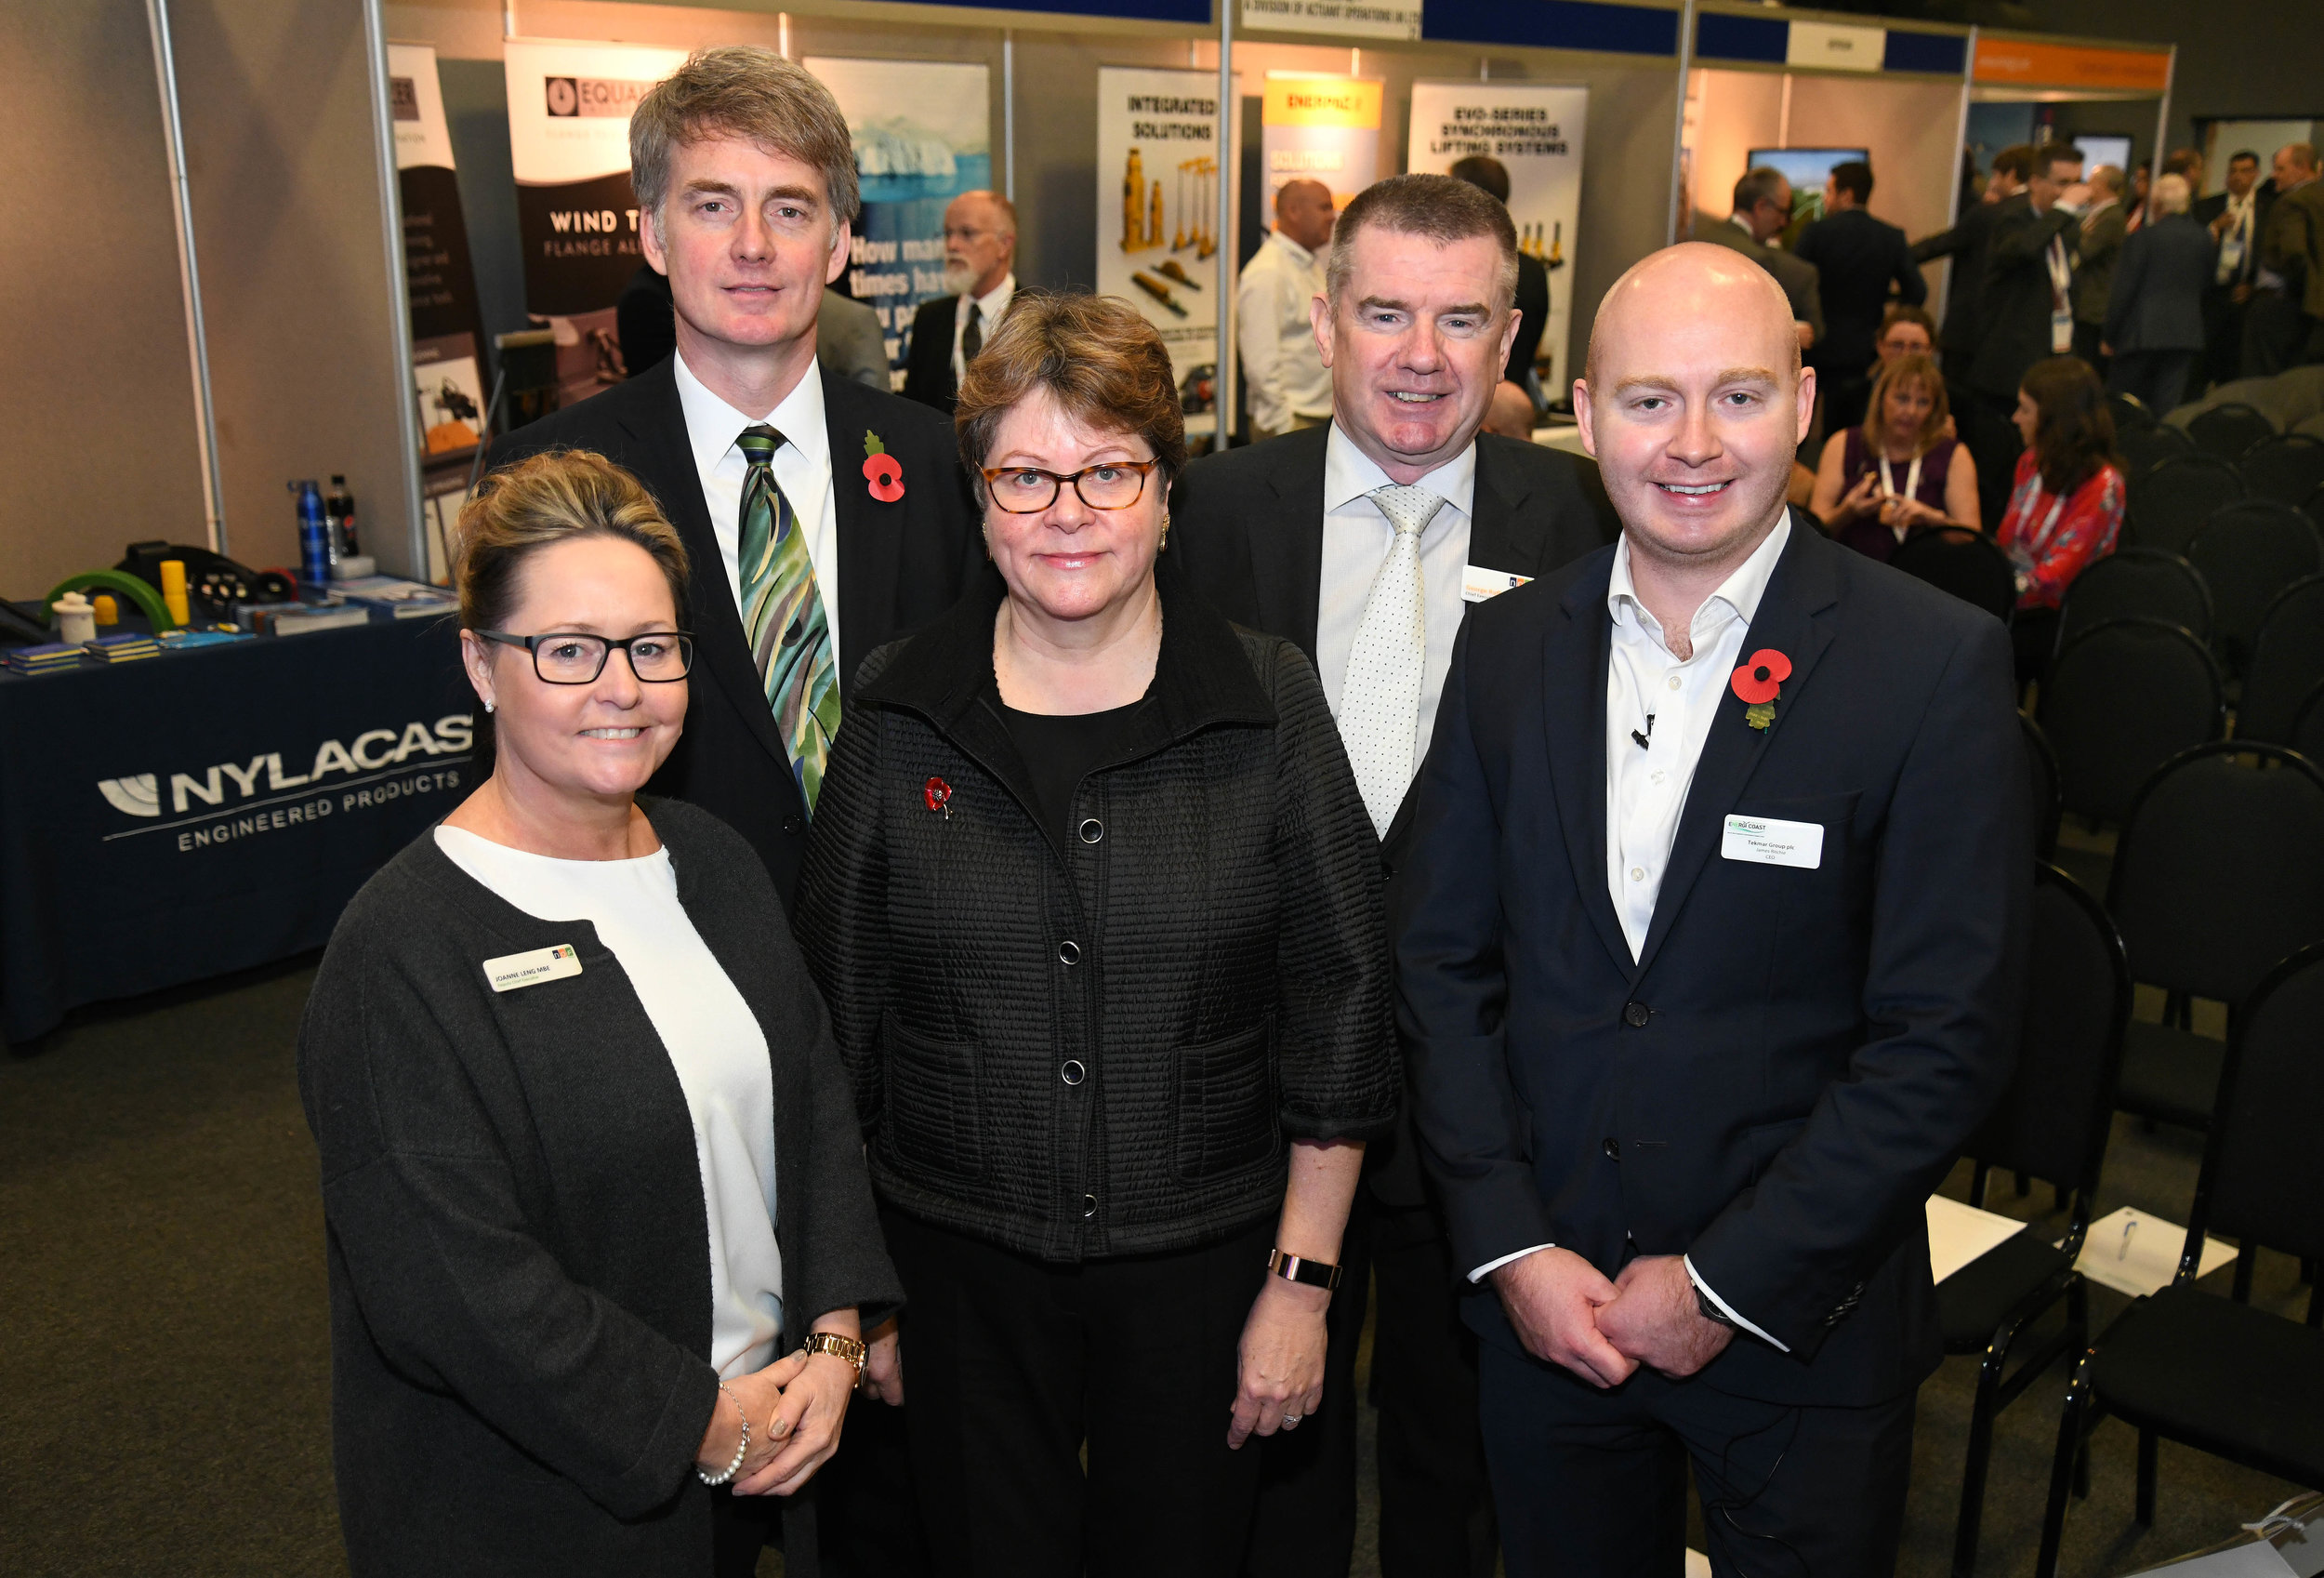 Photo L-R: Joanne Leng (Deputy Chief Executive, NOF Energy), David Few (Sofia Project Director, innogy), Baroness Brown, George Rafferty (CEO, NOF Energy), James Ritchie (Chairman Energi Coast & CEO Tekmar Group plc)